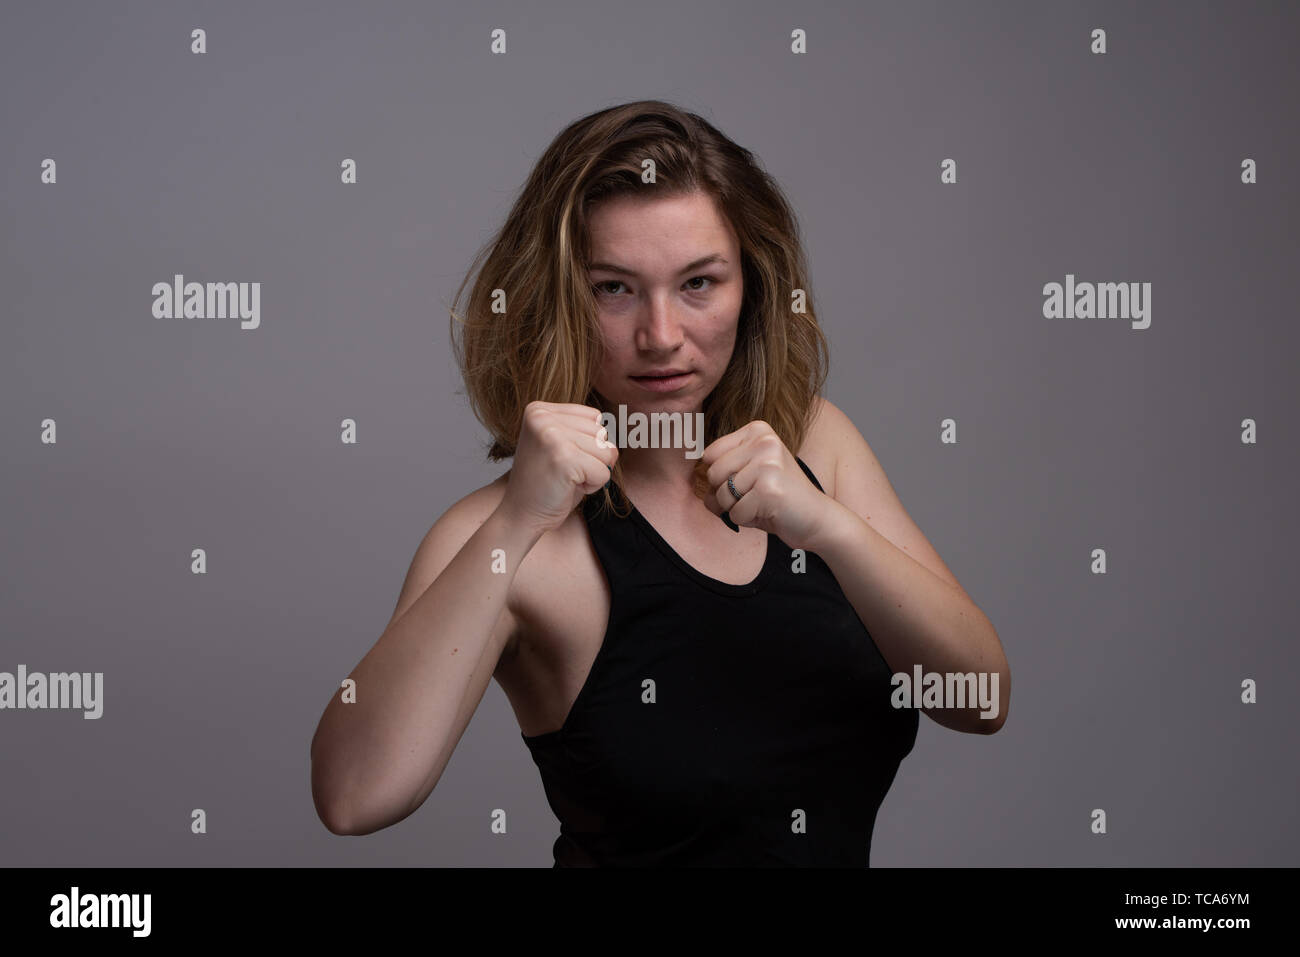 Blonde woman holding fists in aerobic punching class. Isolated subject against gray background. Shot in studio - Stock Image